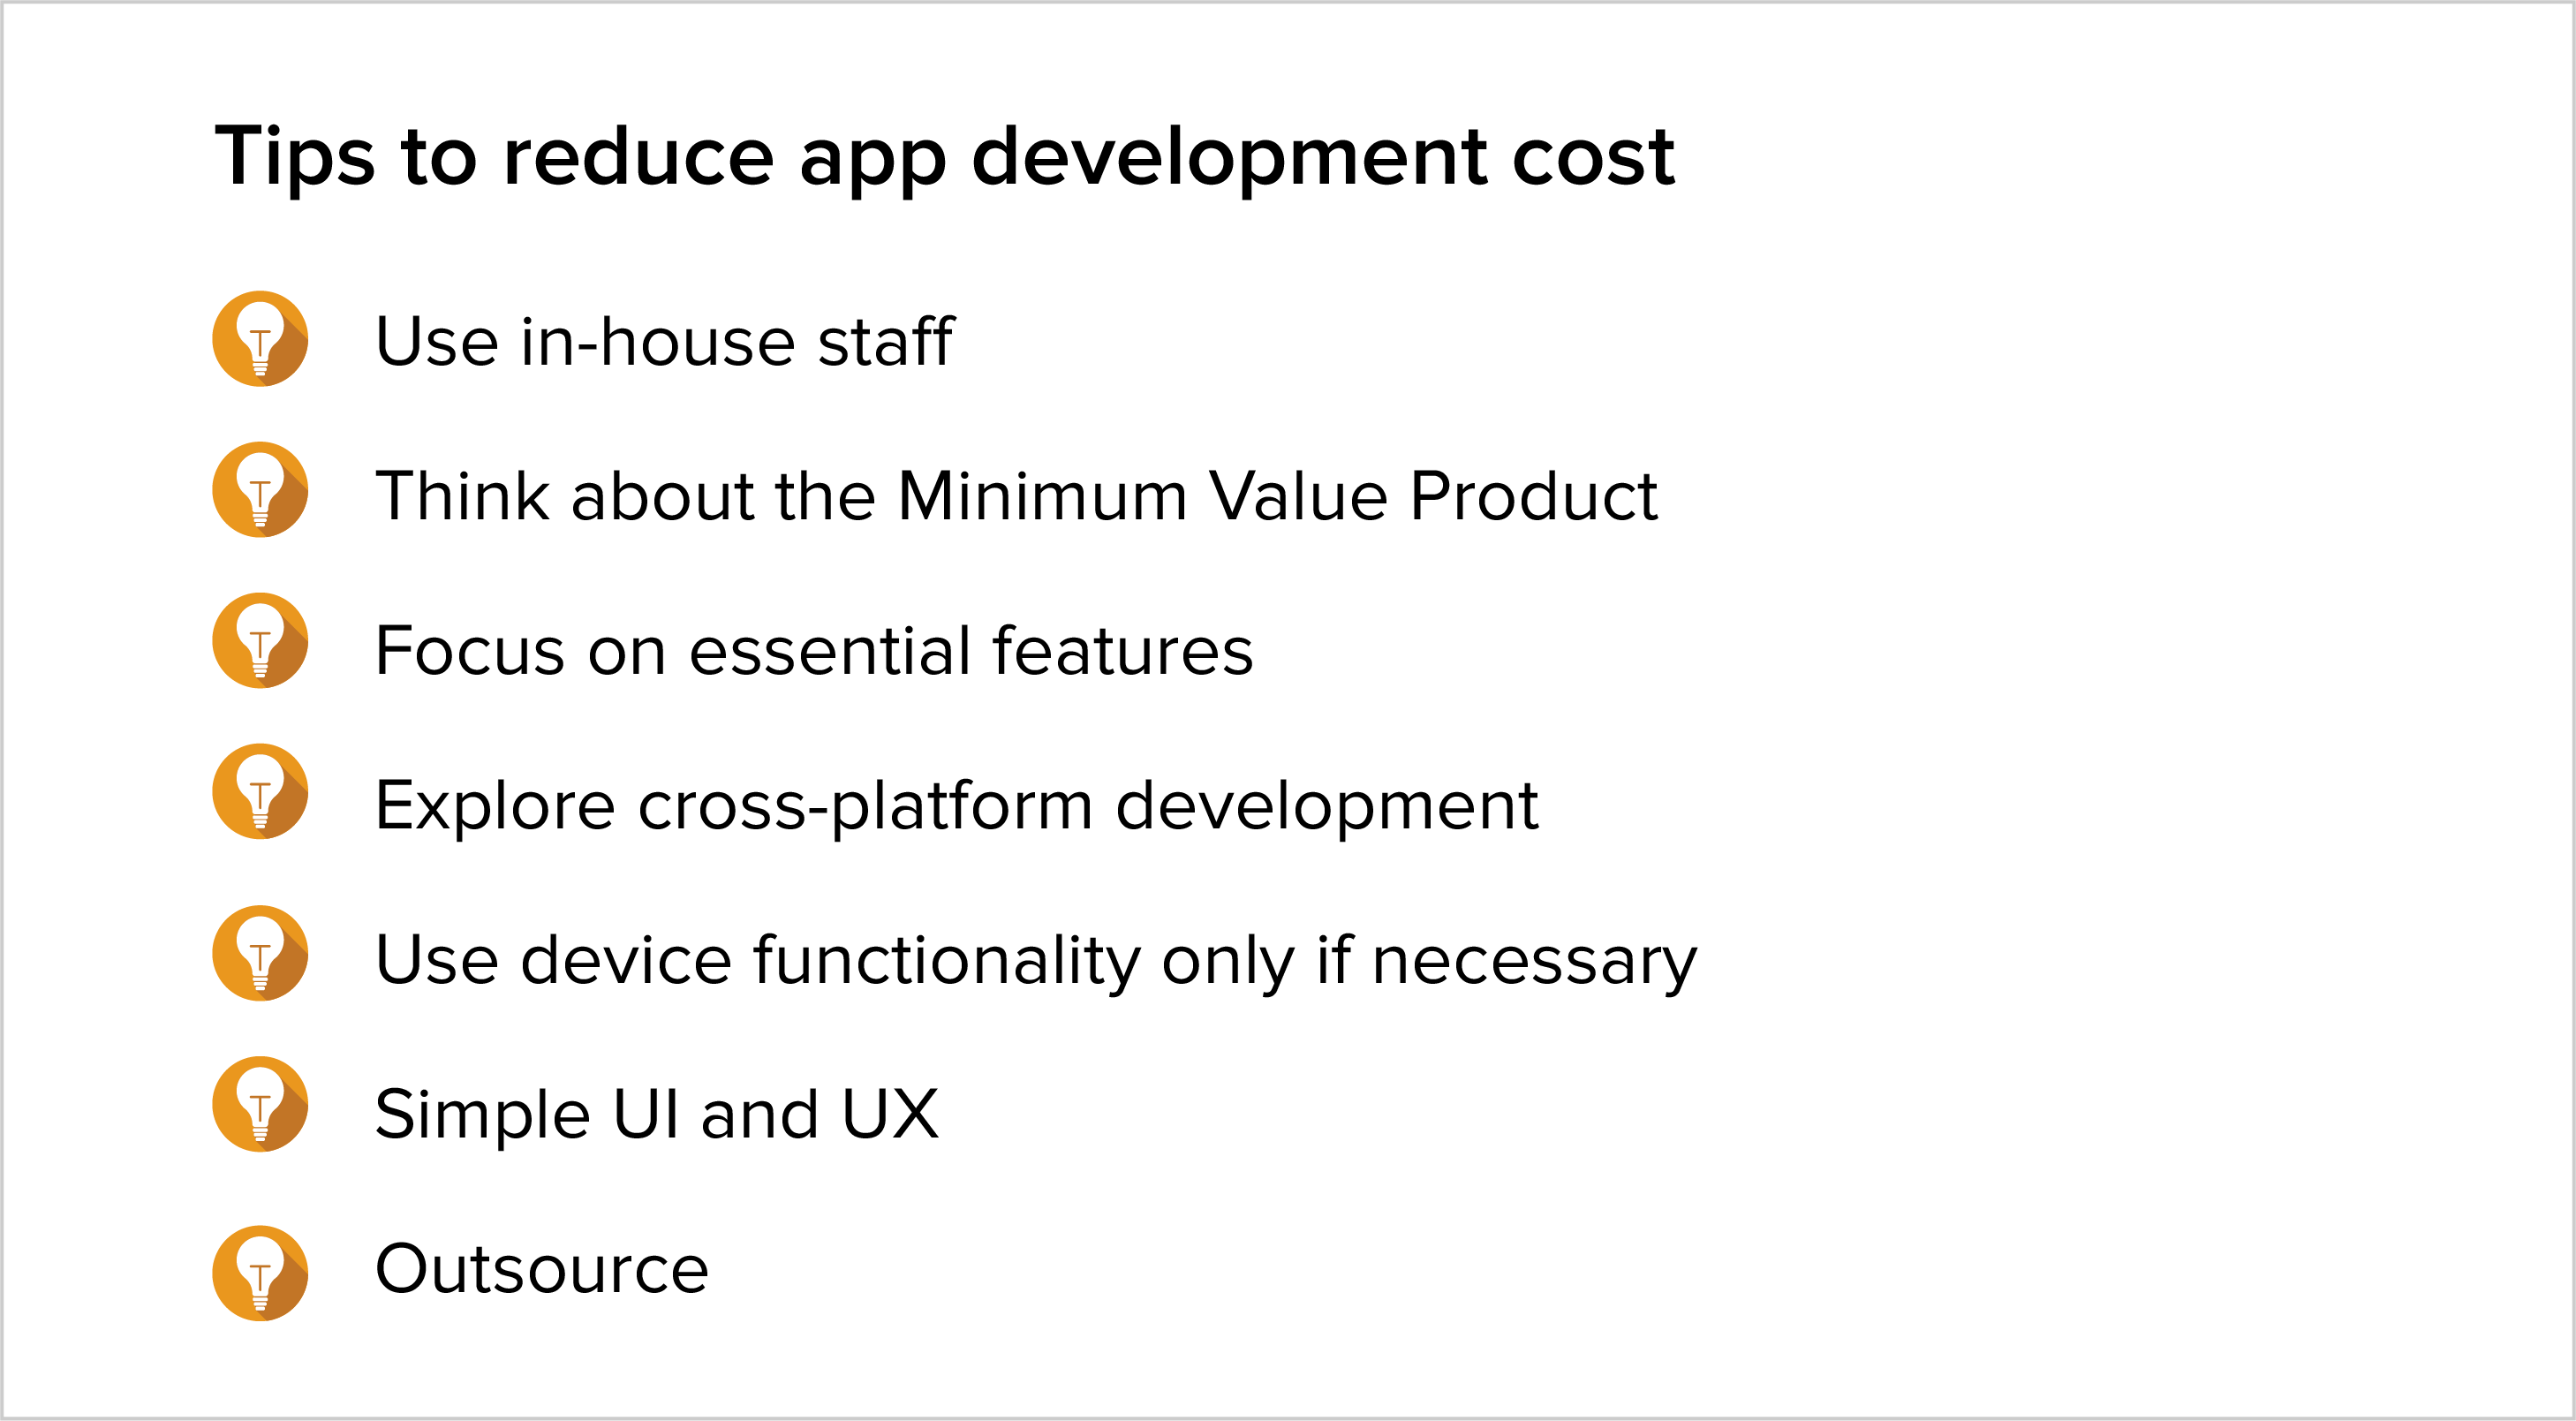 Tips to reduce app development cost